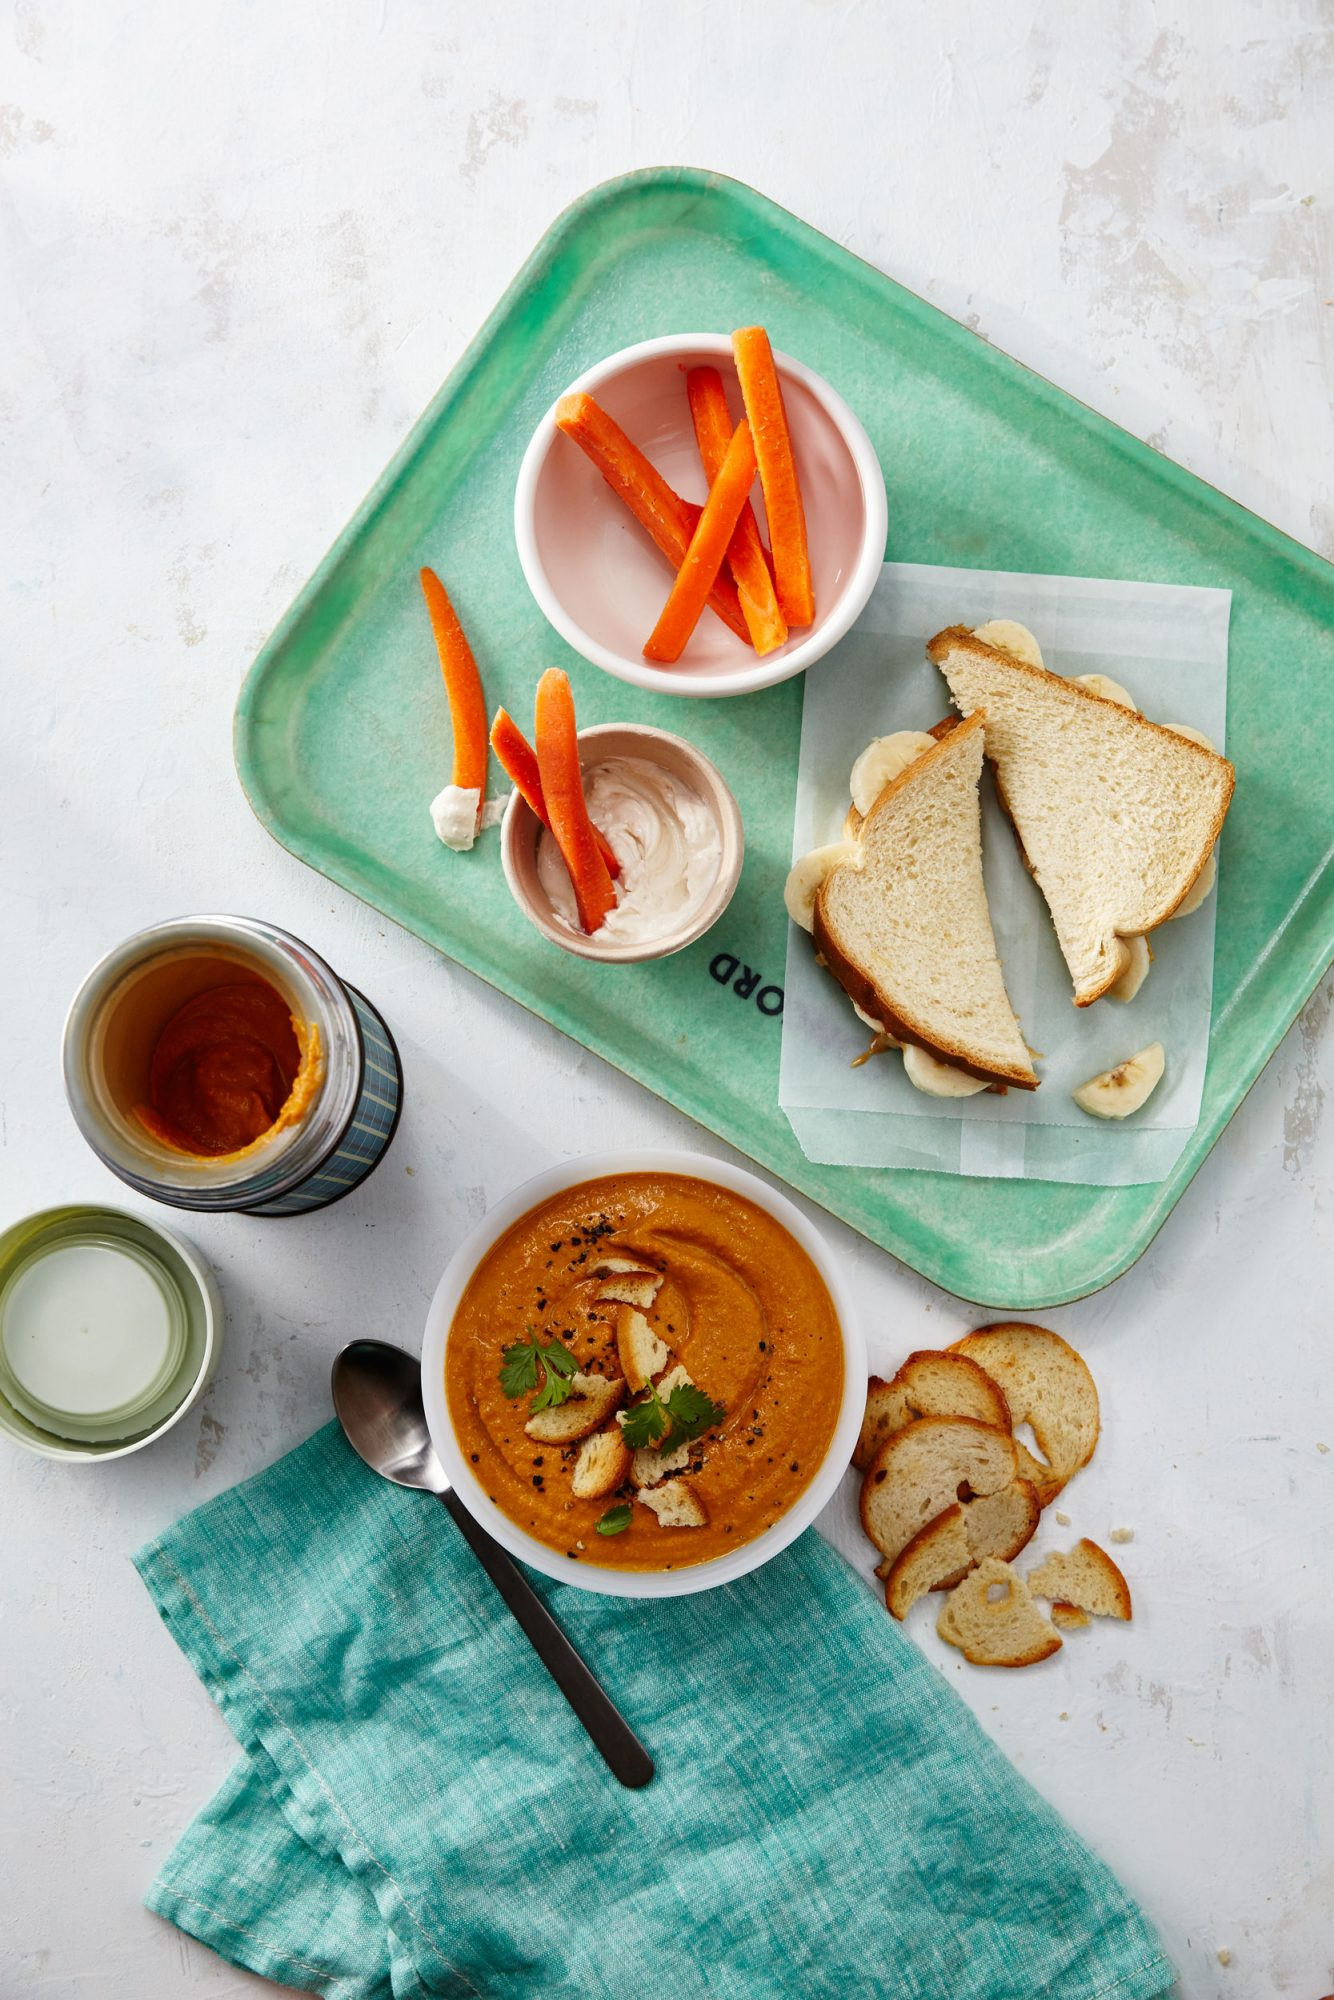 Gingered Carrot Cashew Soup/Cashew Butter Banana Sandwich image